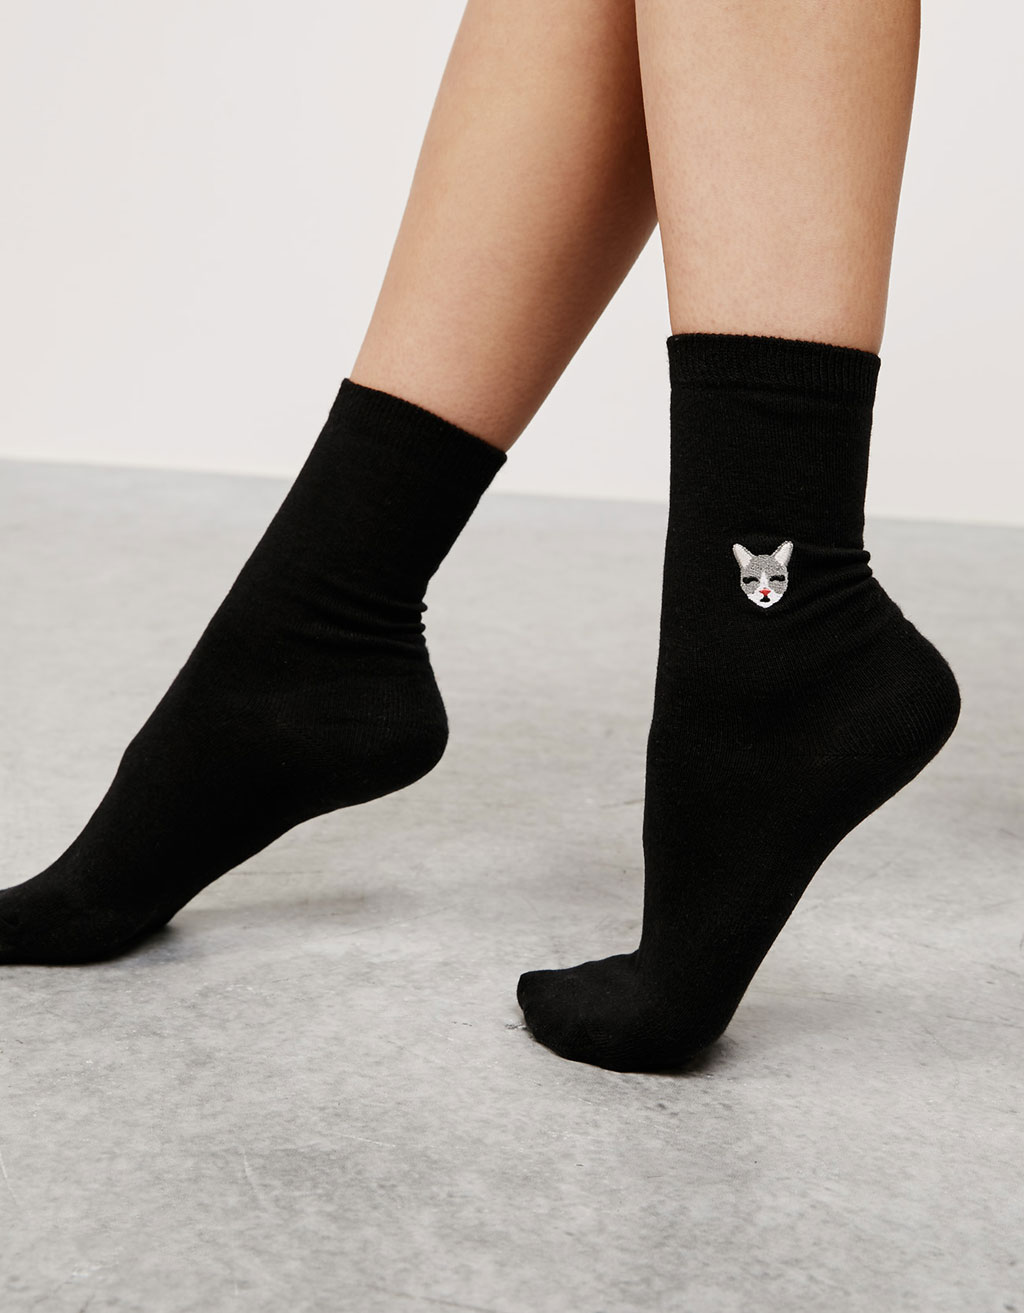 'Kitty - Puppy' sock set